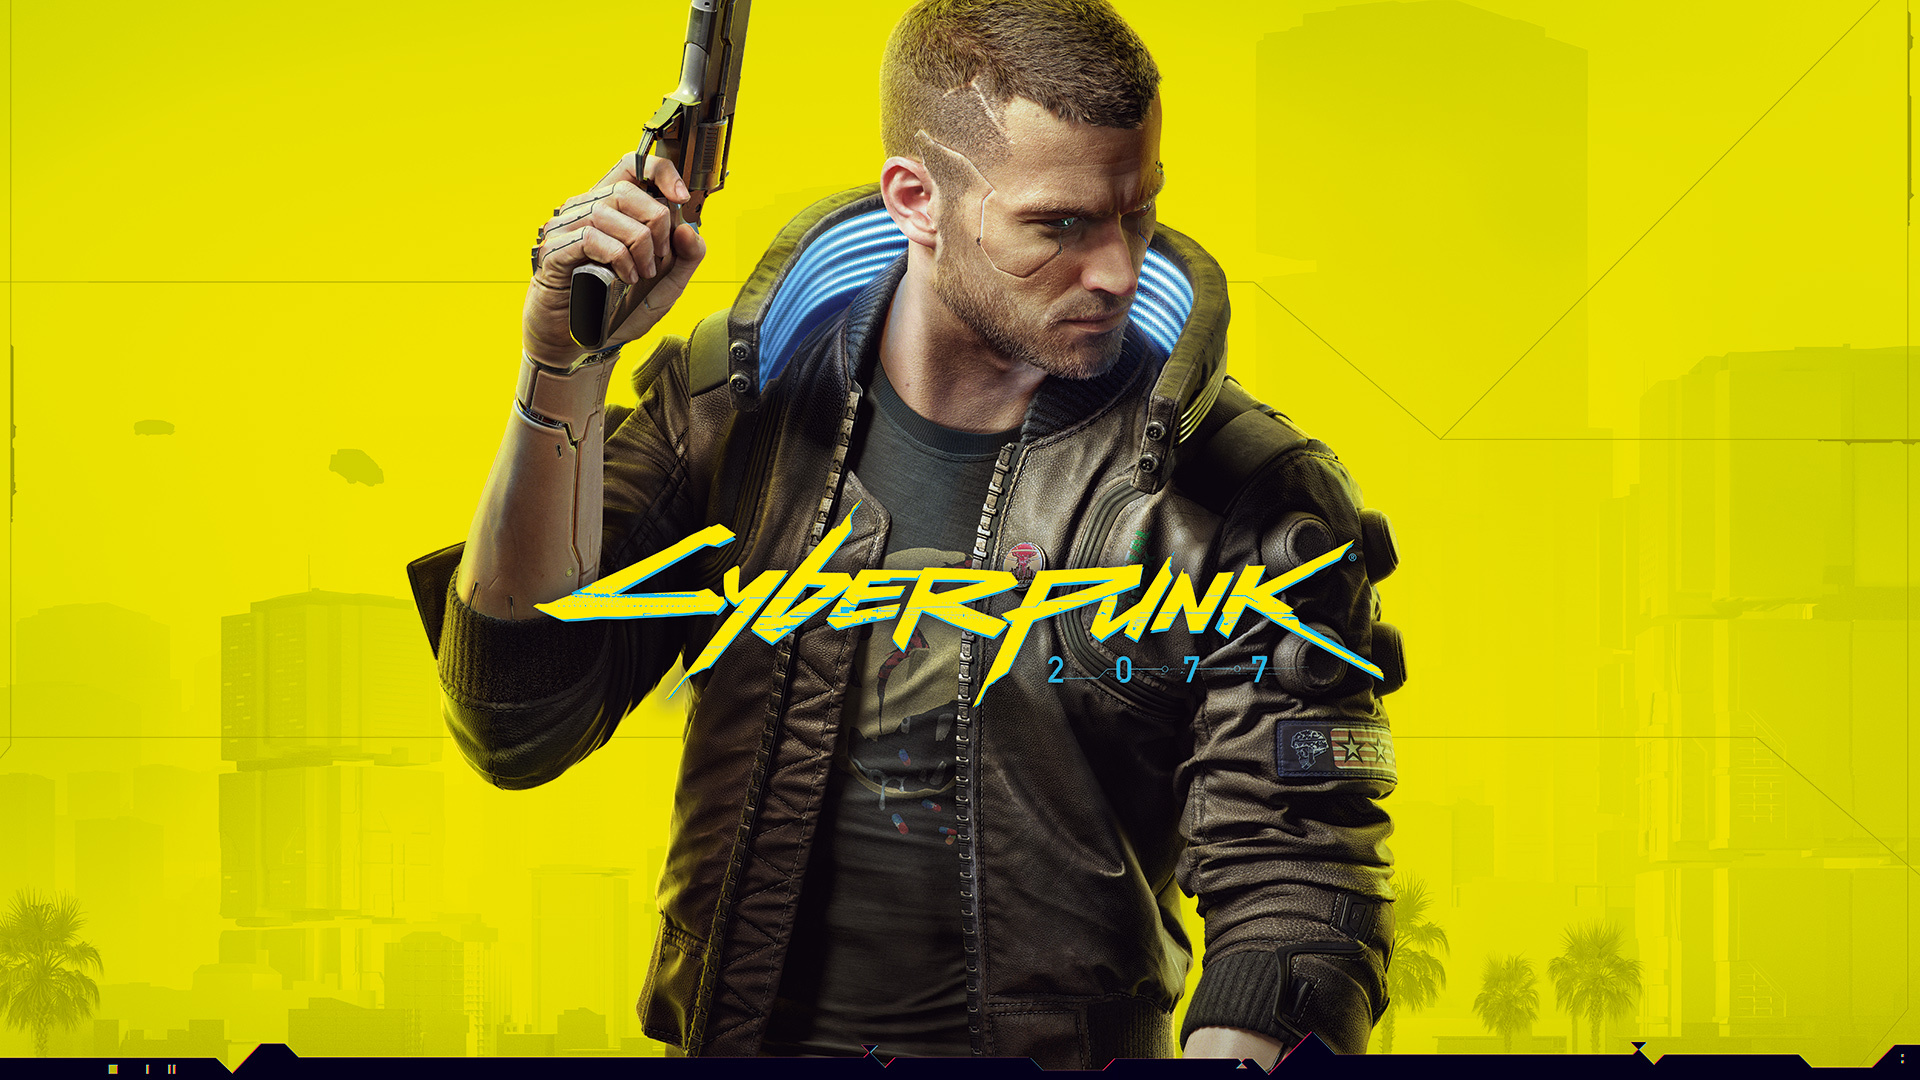 Cyberpunk 2077 for Stadia Delayed. Here's when we can expect it